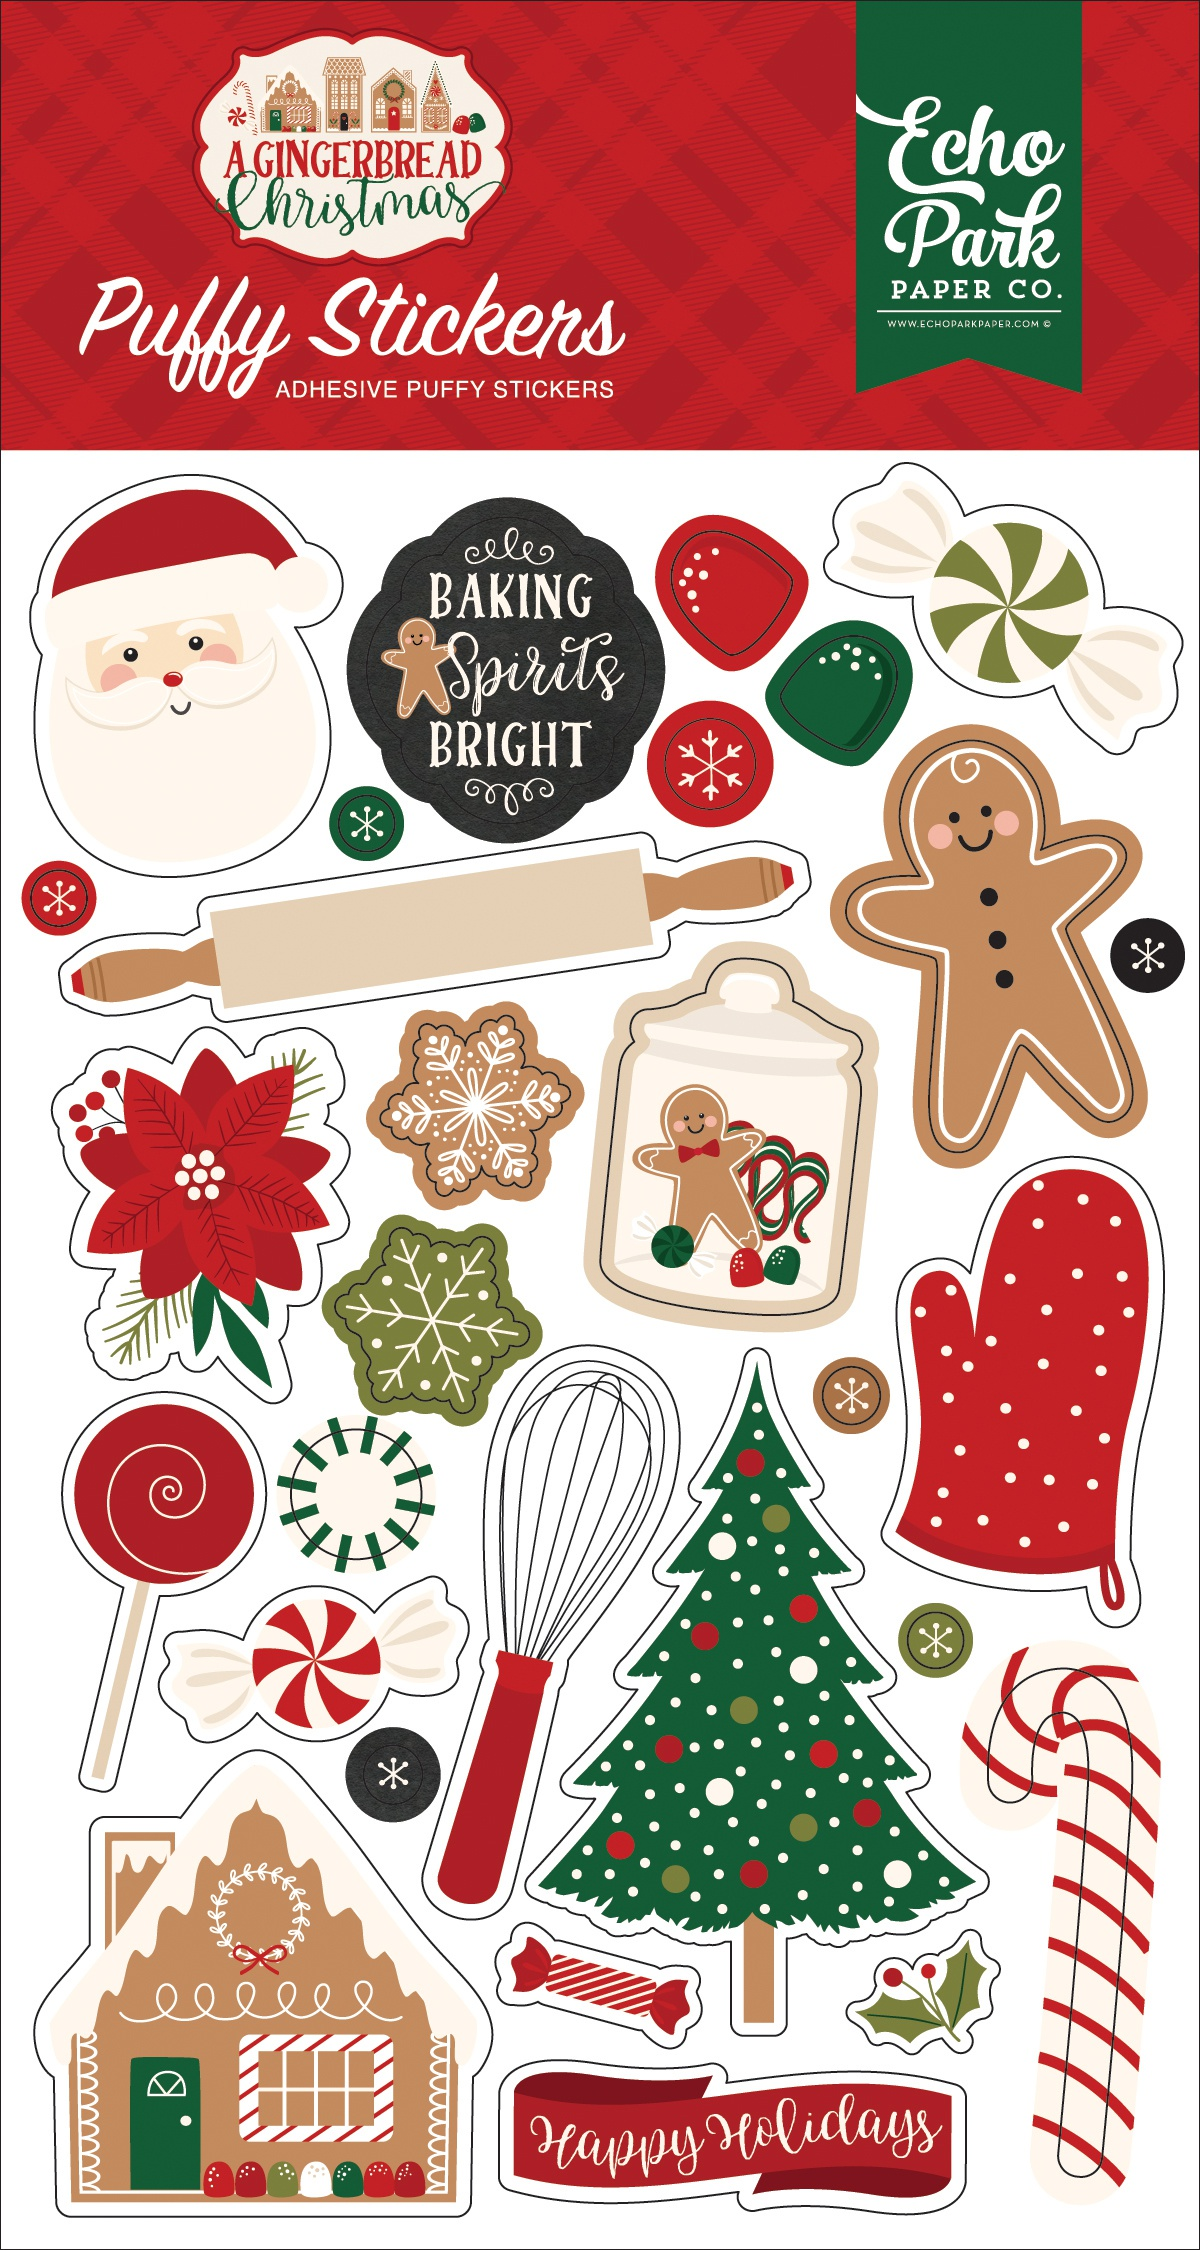 A Gingerbread Christmas Puffy Stickers-